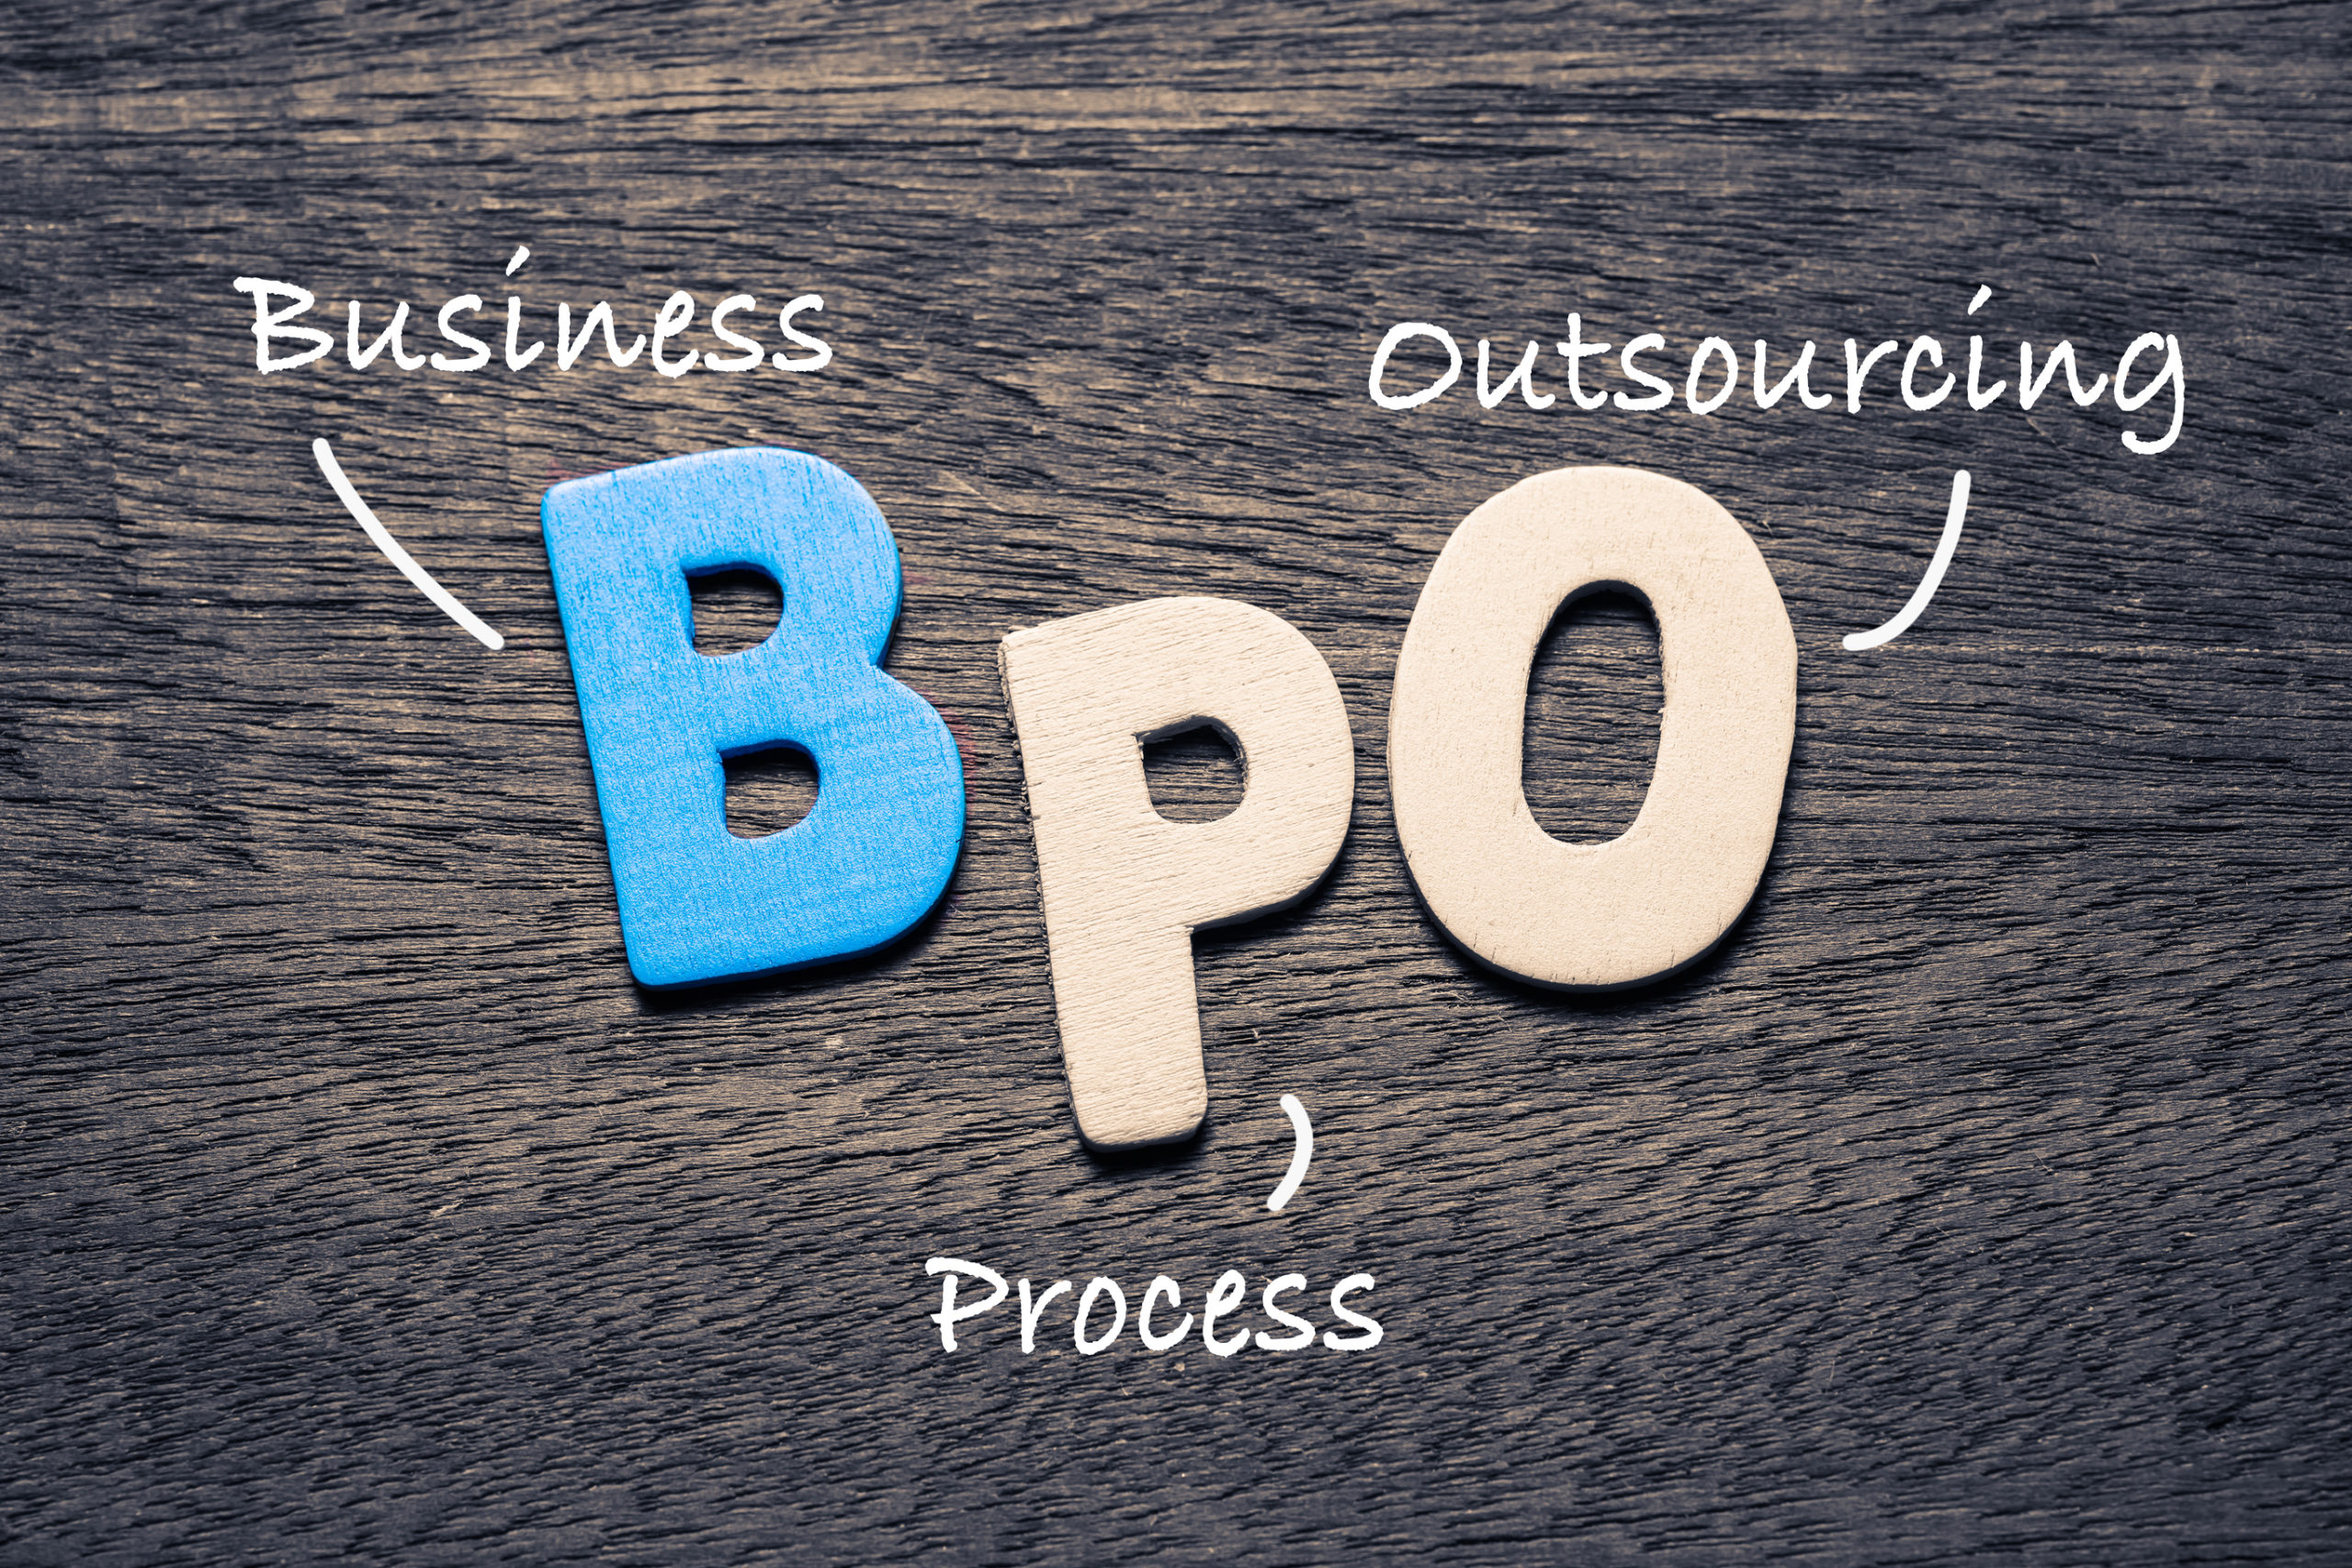 bpo-outsourcing-misconceptions